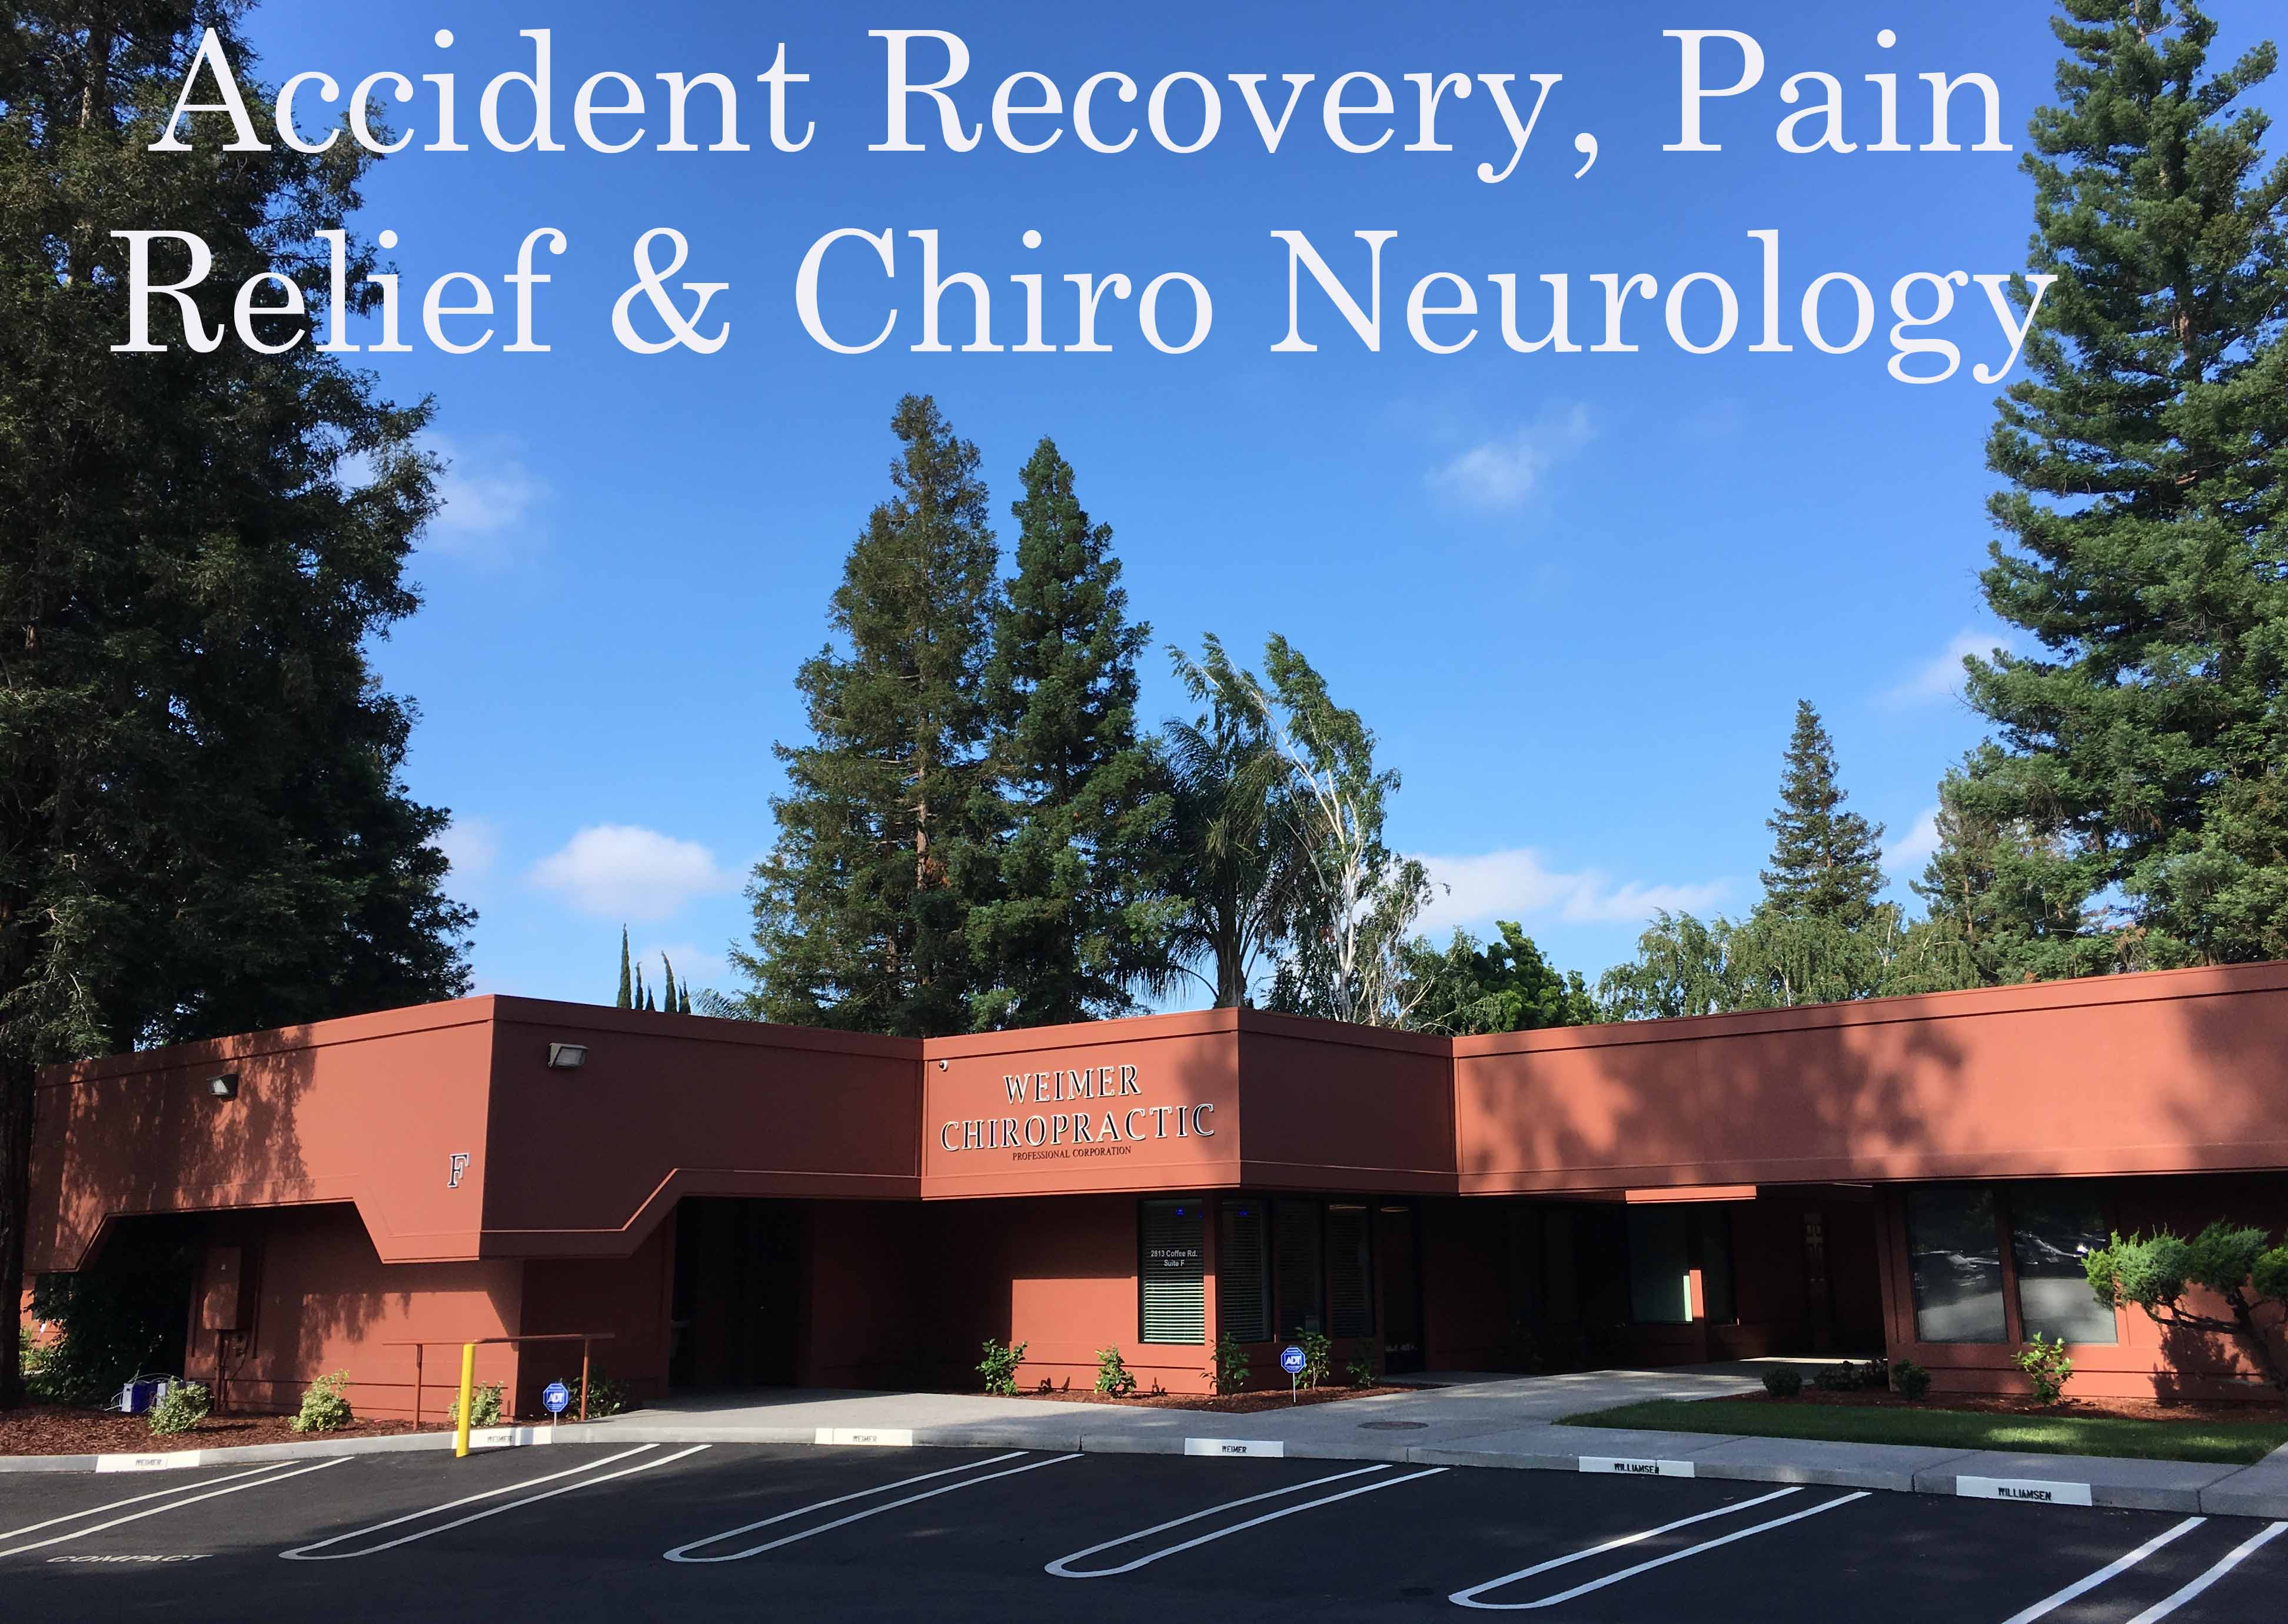 accident recovery, pain relief and chiropractic neurology.